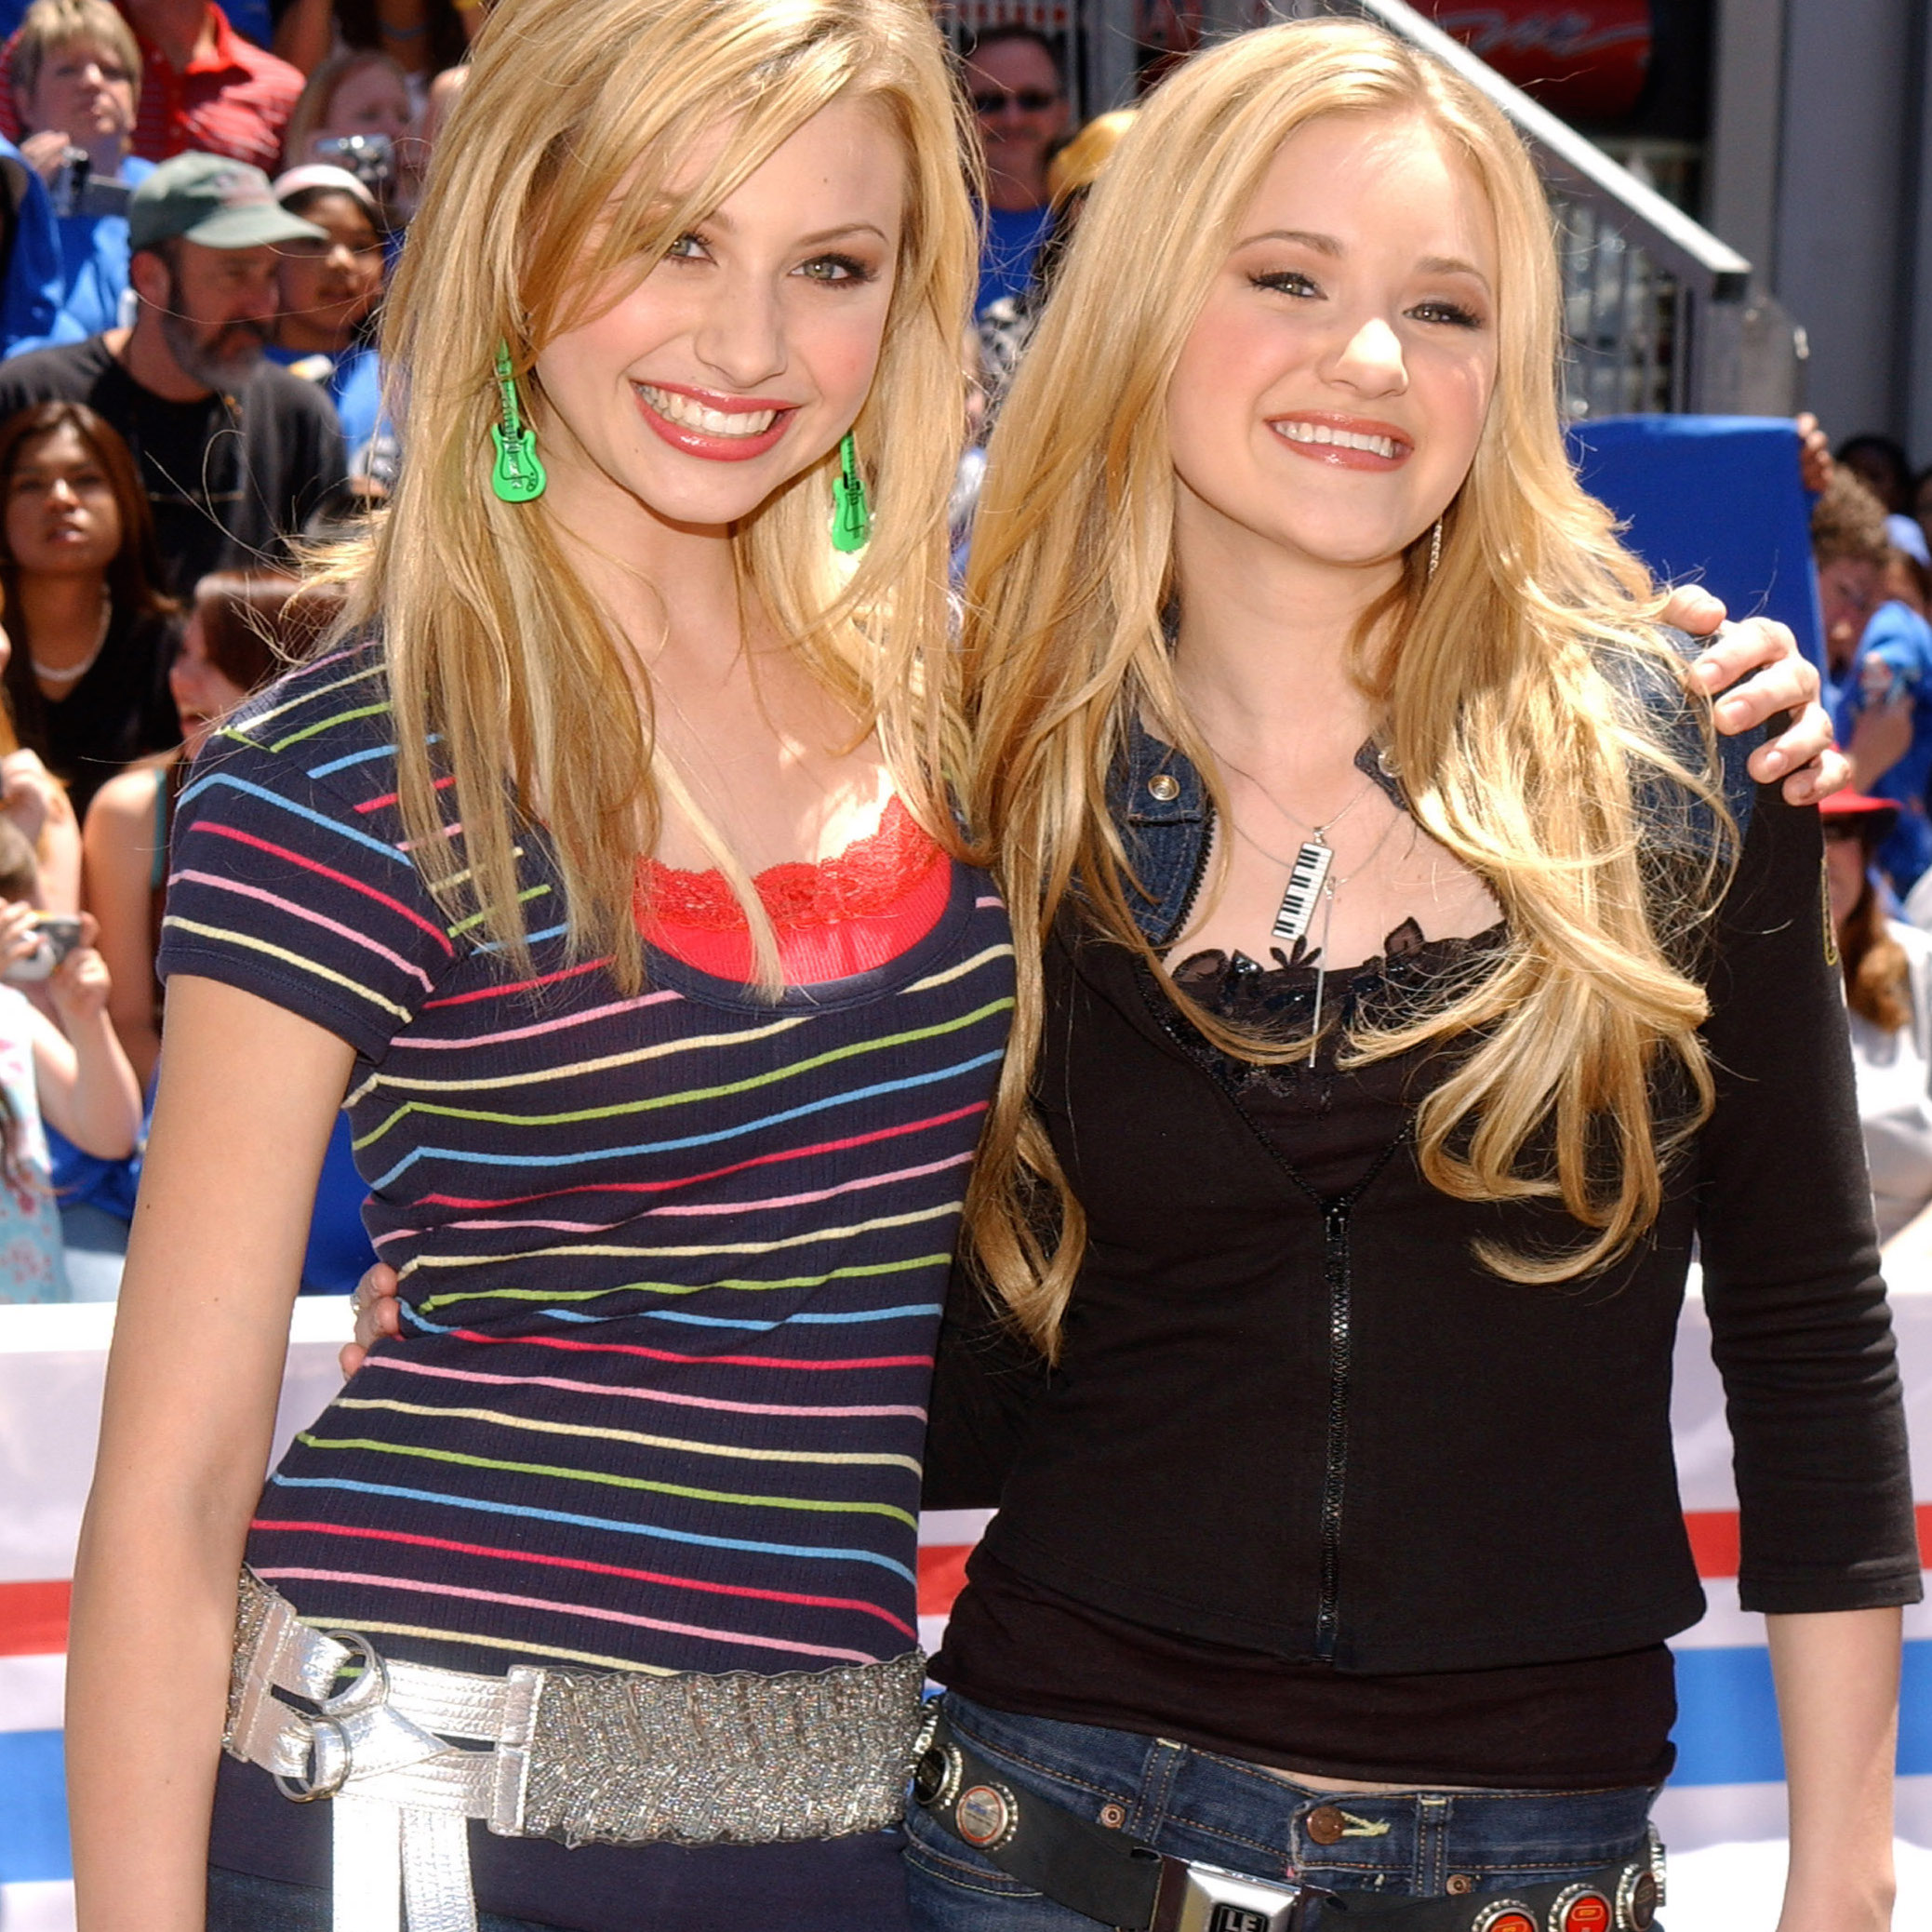 aly and aj - photo #22